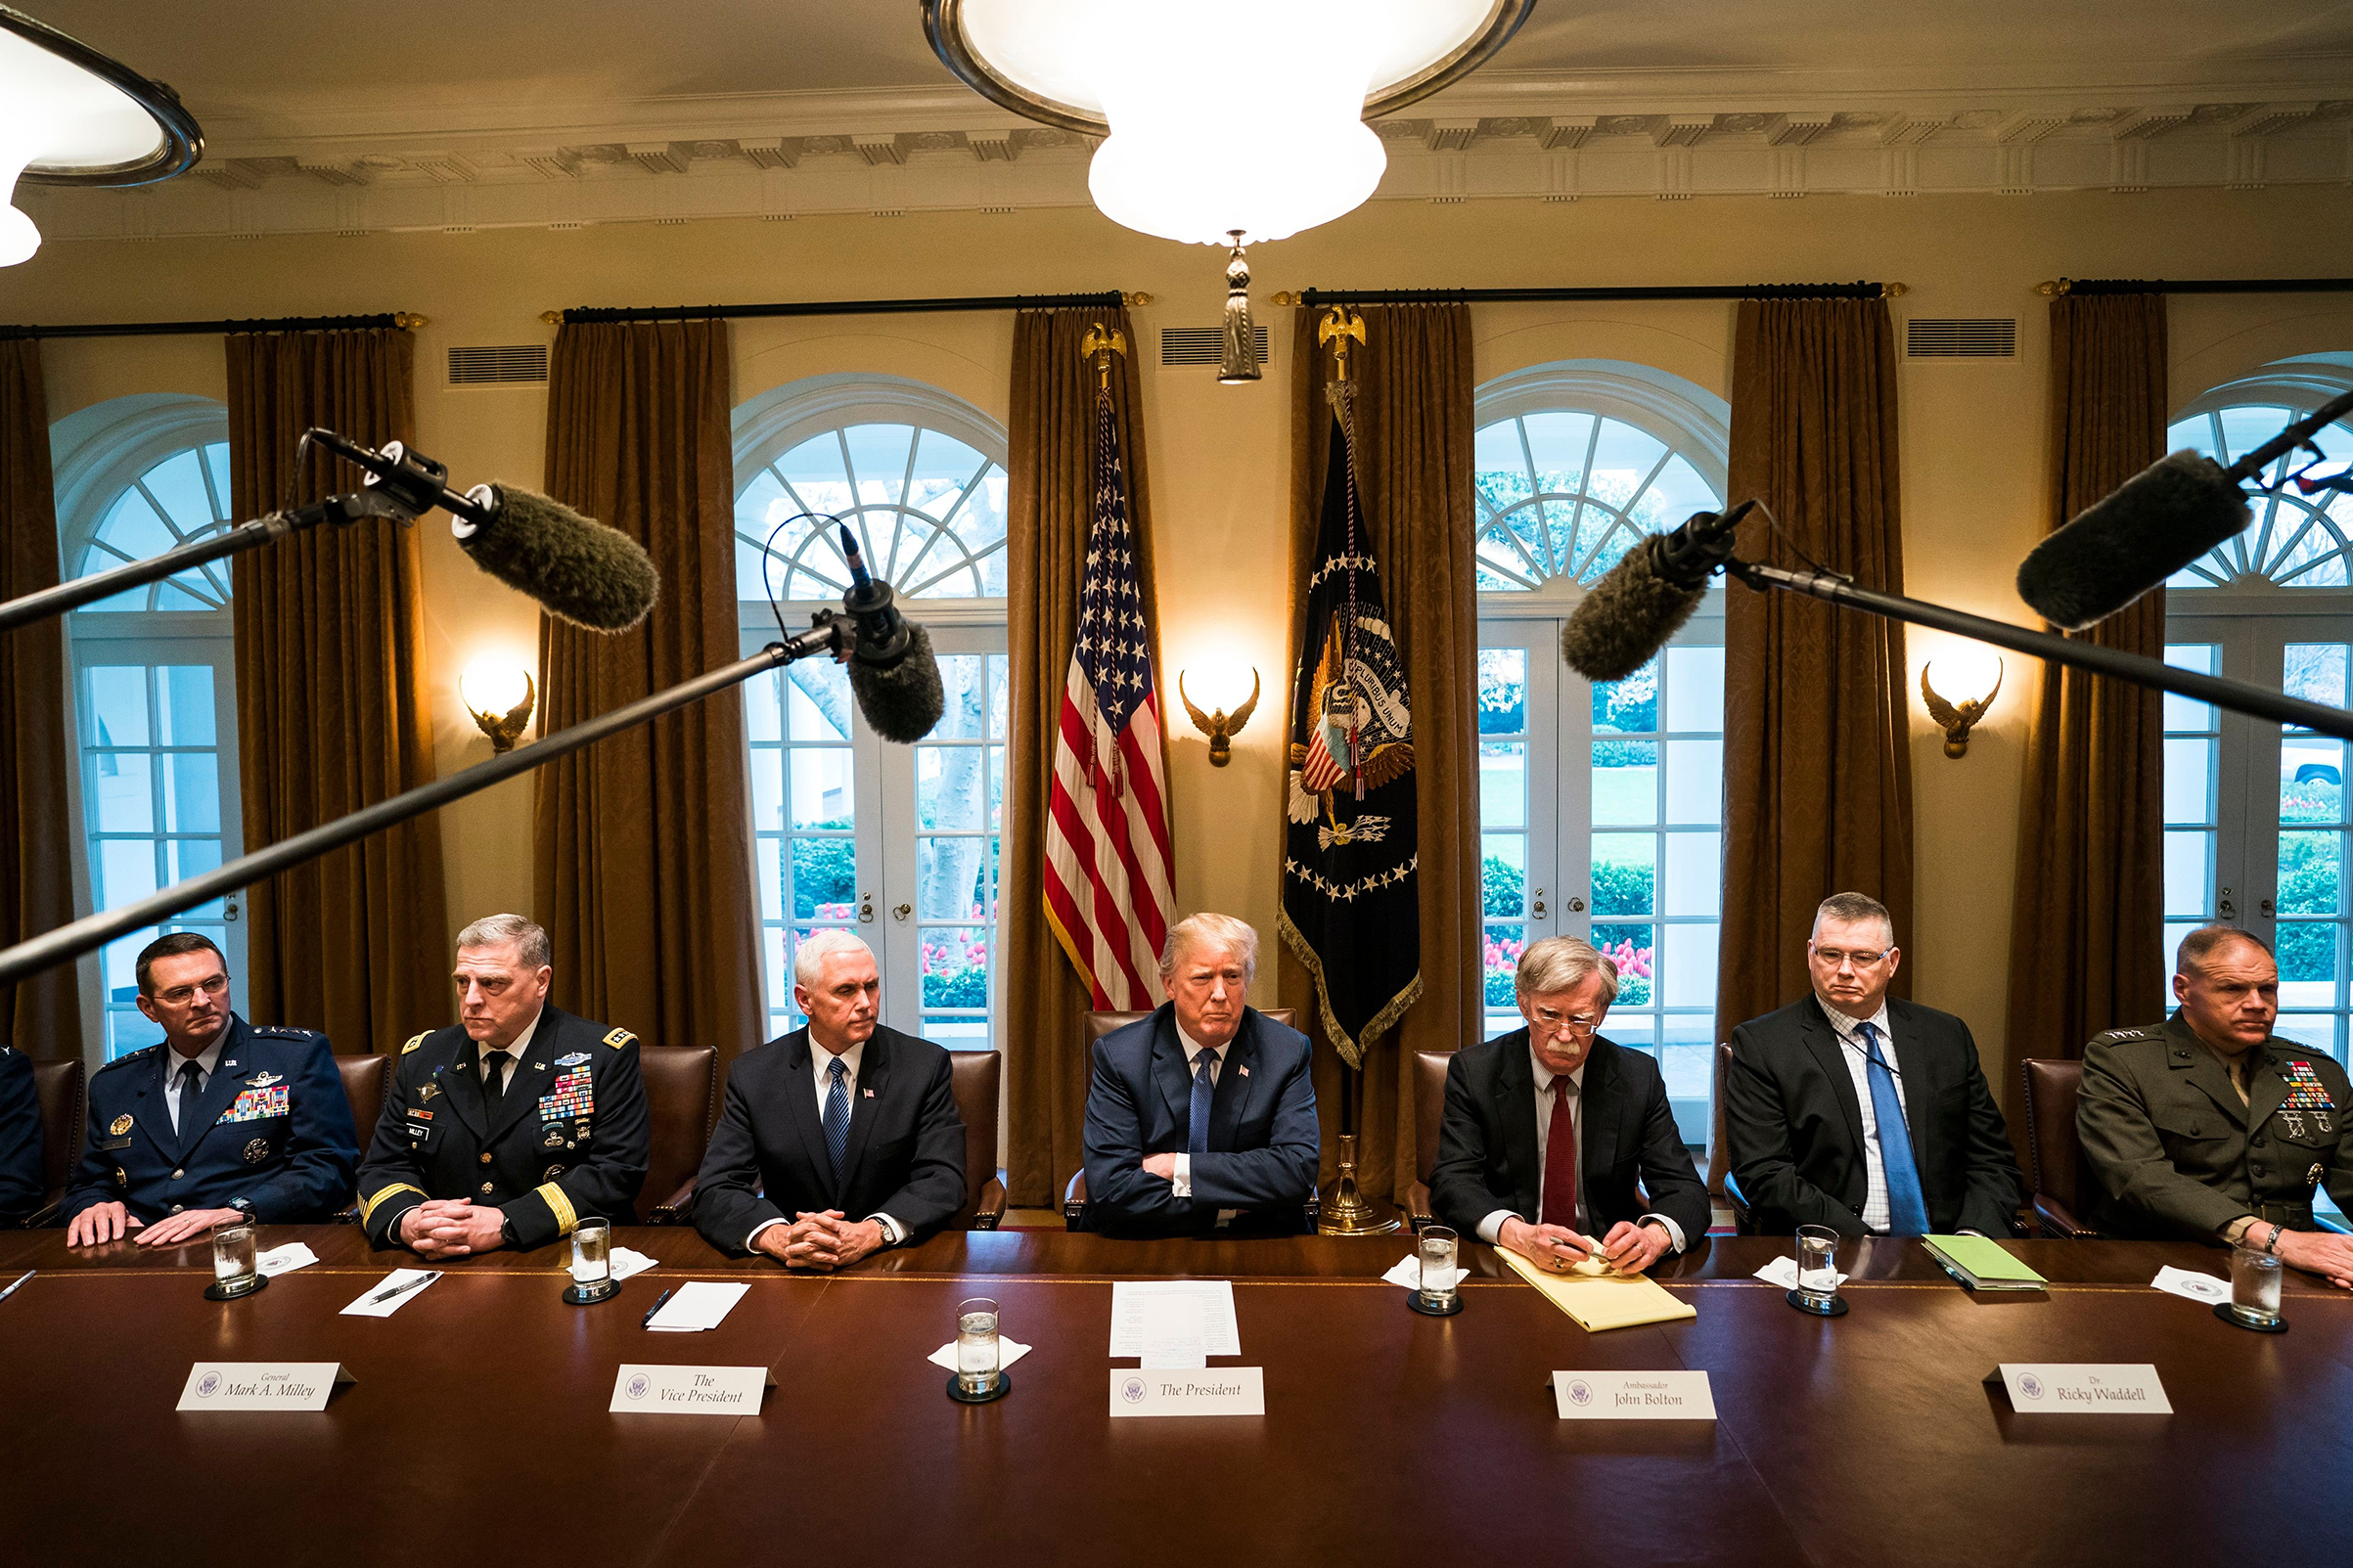 US President Donald J. Trump (C) speaks with the media before a meeting with his military leadership in the Cabinet Room of the White House in Washington D.C., on April 9, 2018.